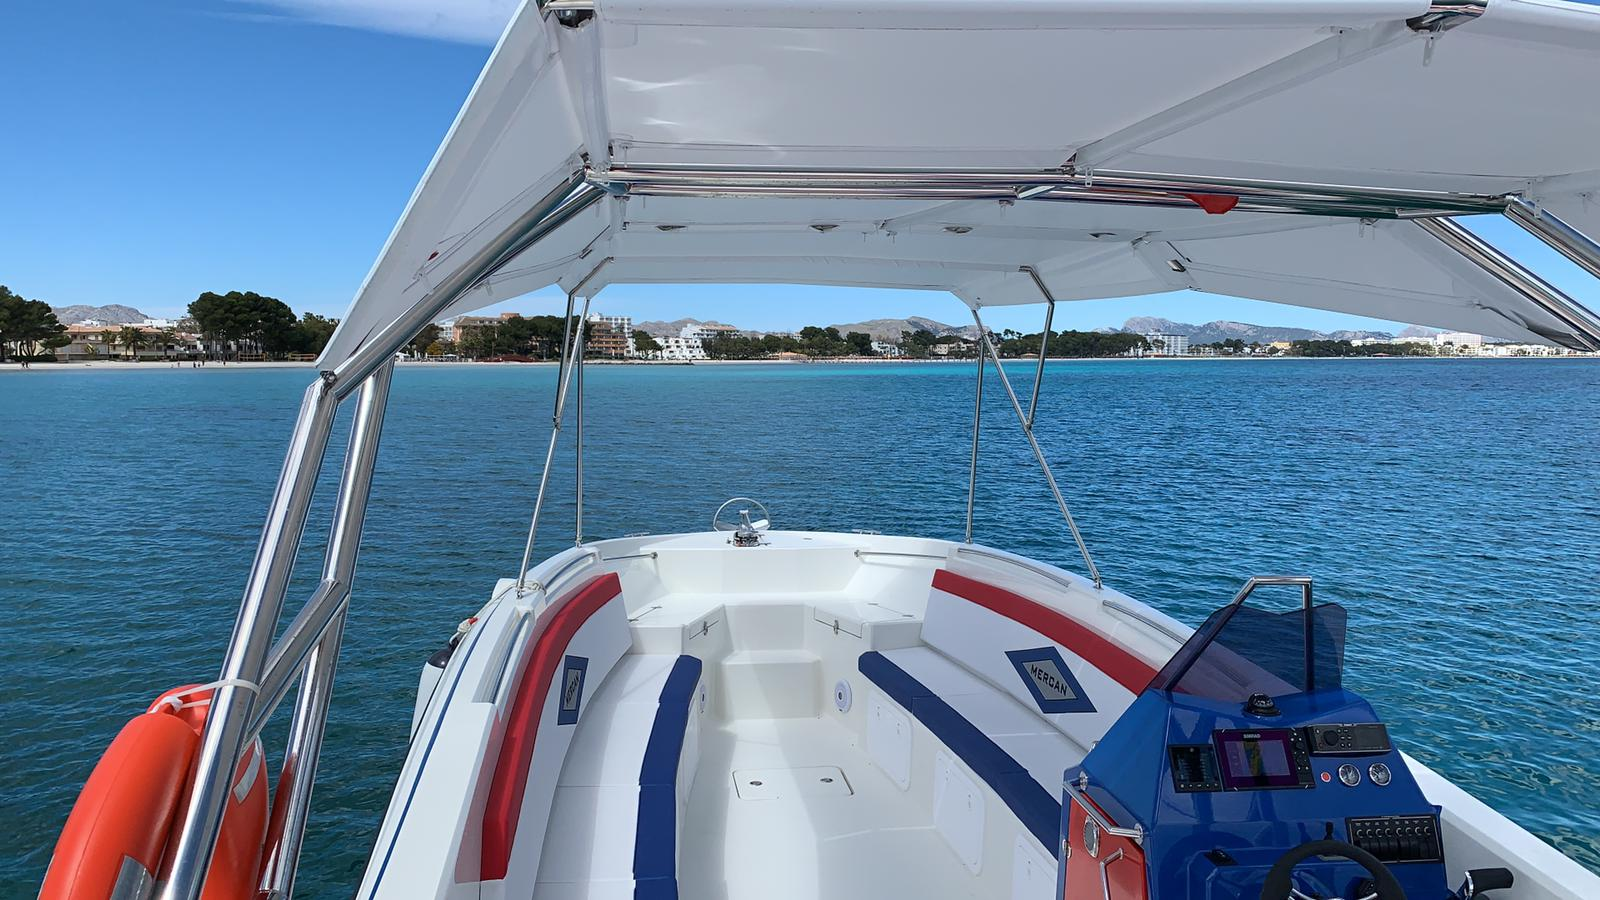 mercan-yachting-excursion-36 5